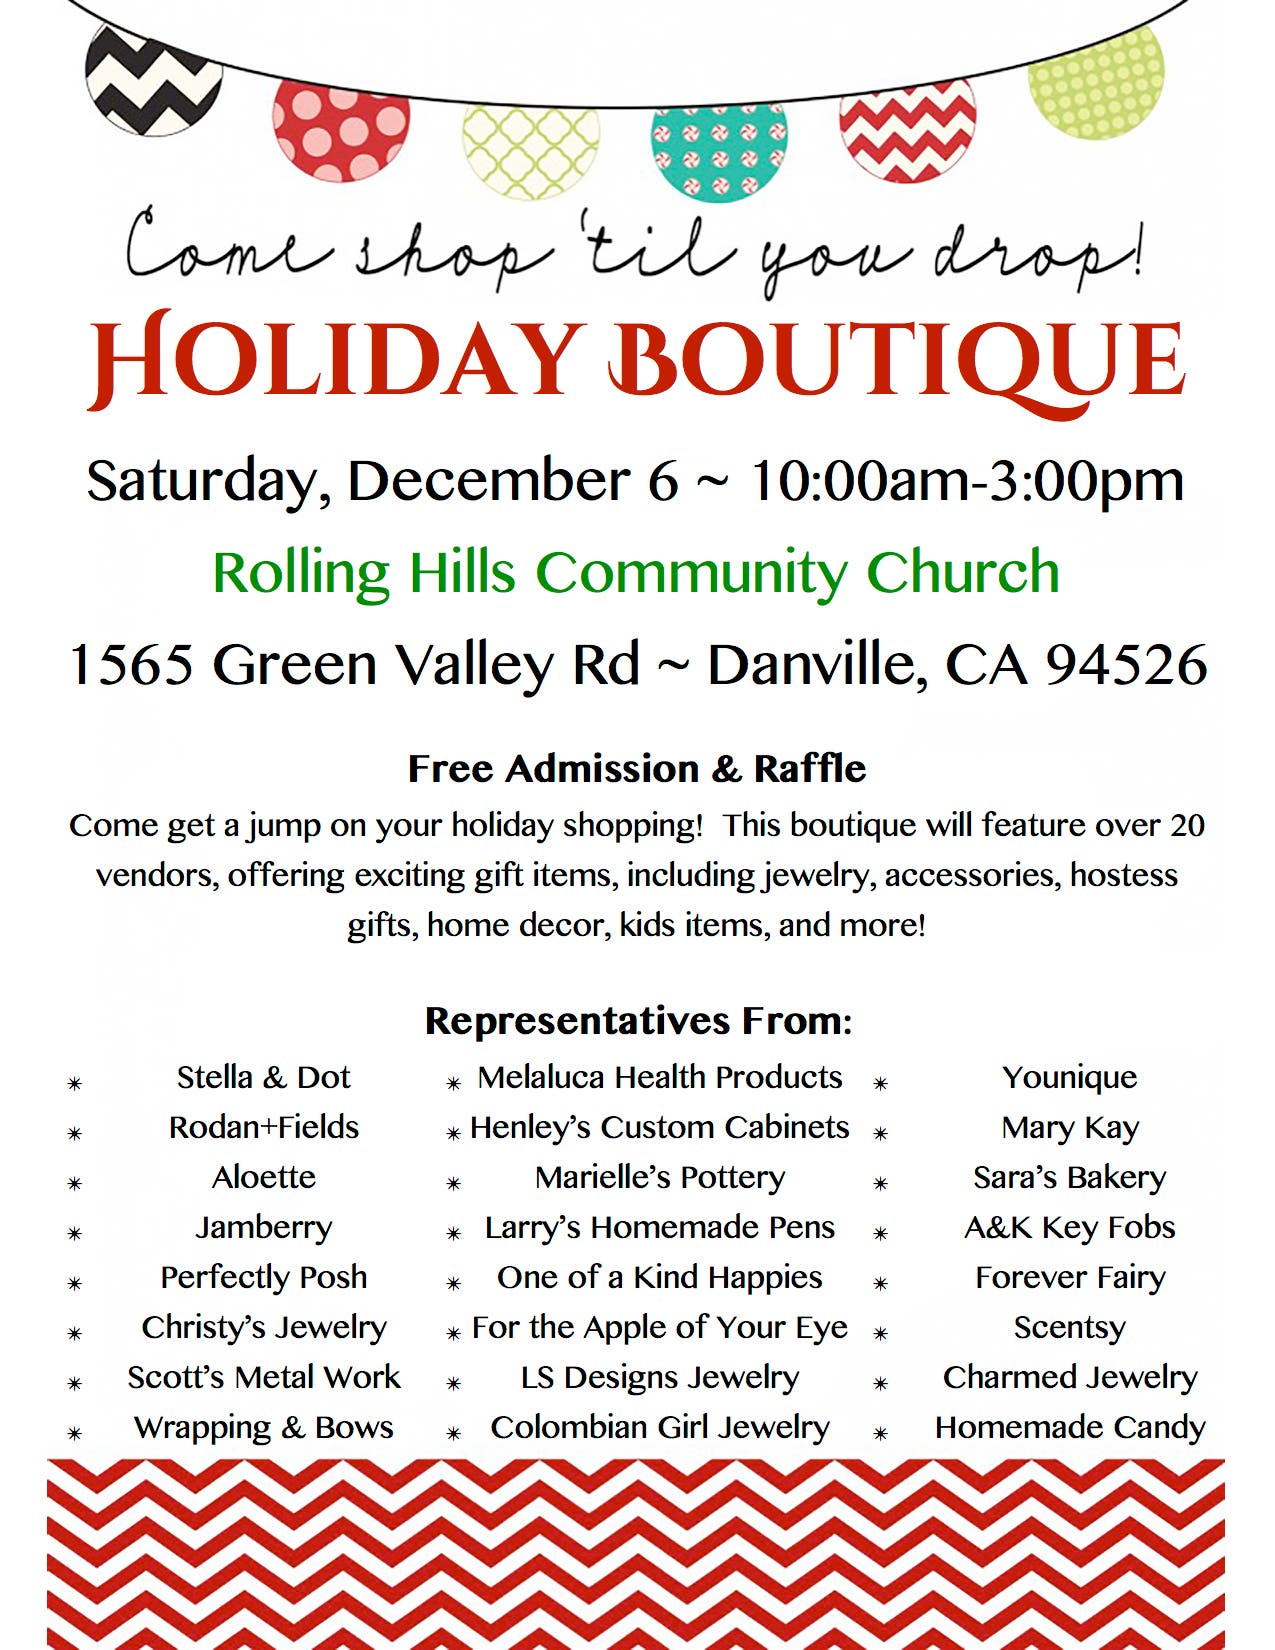 Holiday Boutique | Danville, CA Patch